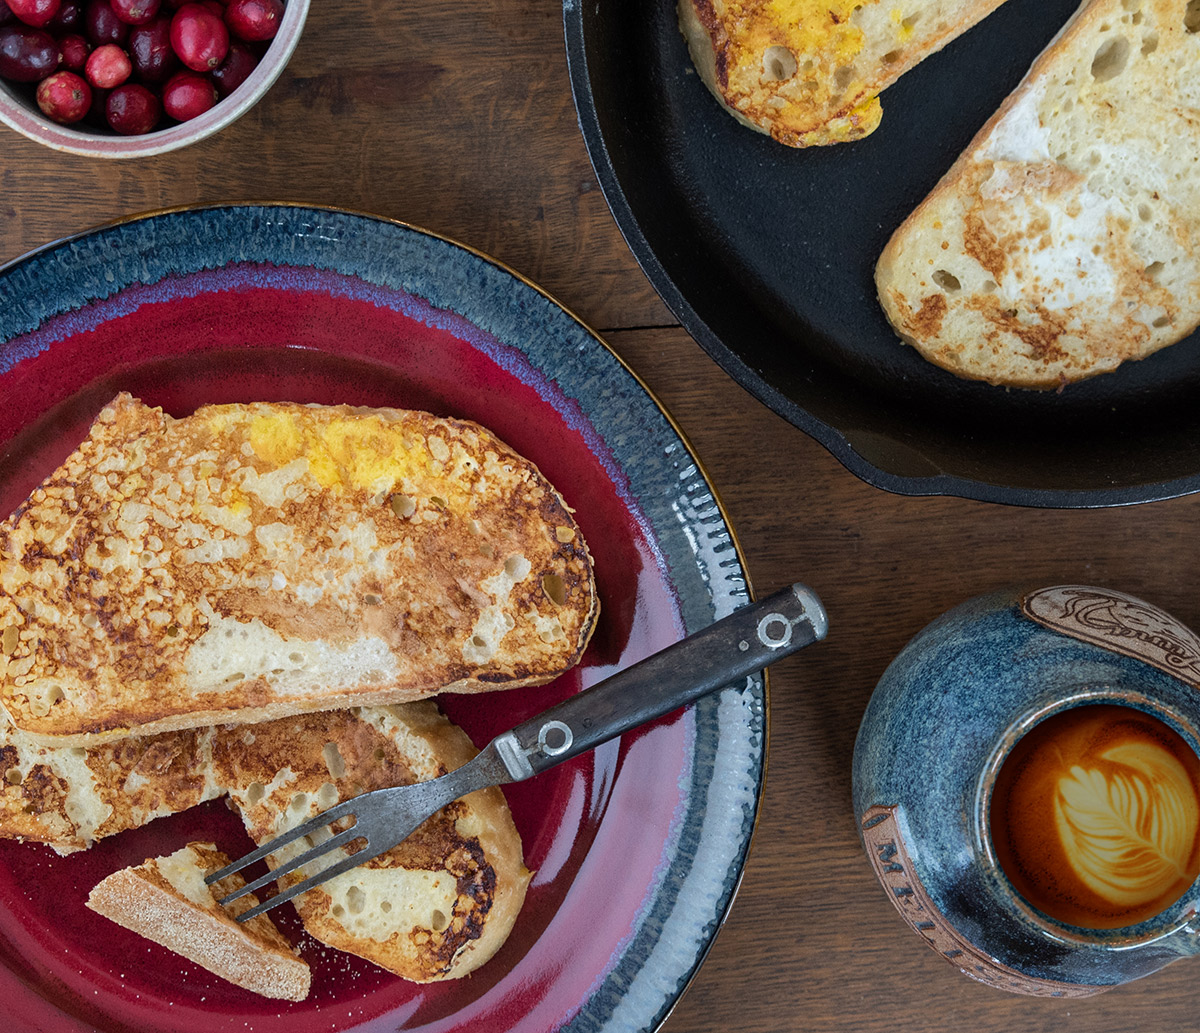 Eggnog french toast on colorful stoneware plates with a cup of coffee nearby.